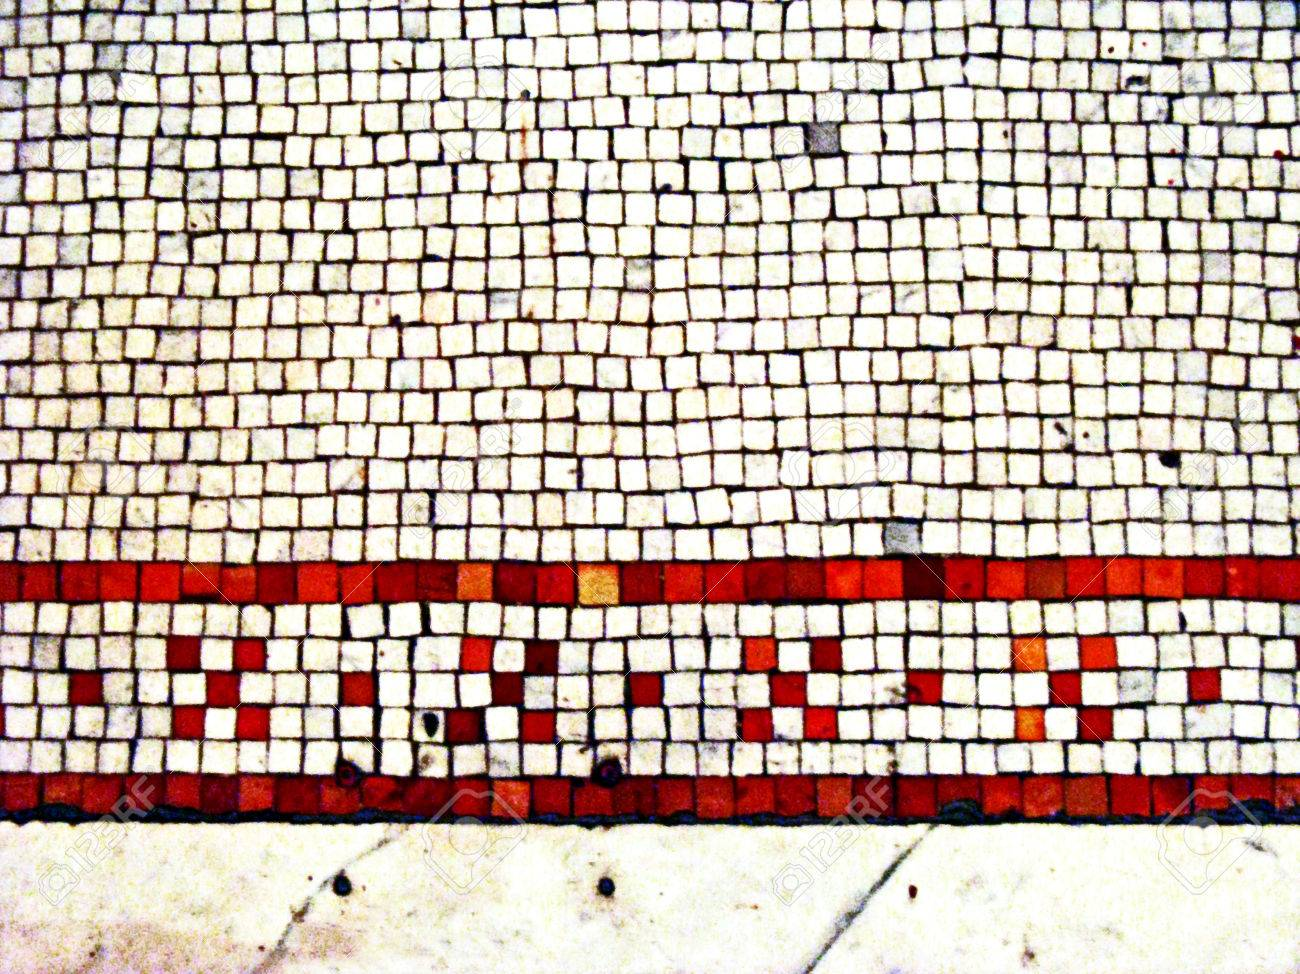 Old stone tile floor with mosaic inlay pattern in red and white old stone tile floor with mosaic inlay pattern in red and white vintage 1800s stock dailygadgetfo Gallery